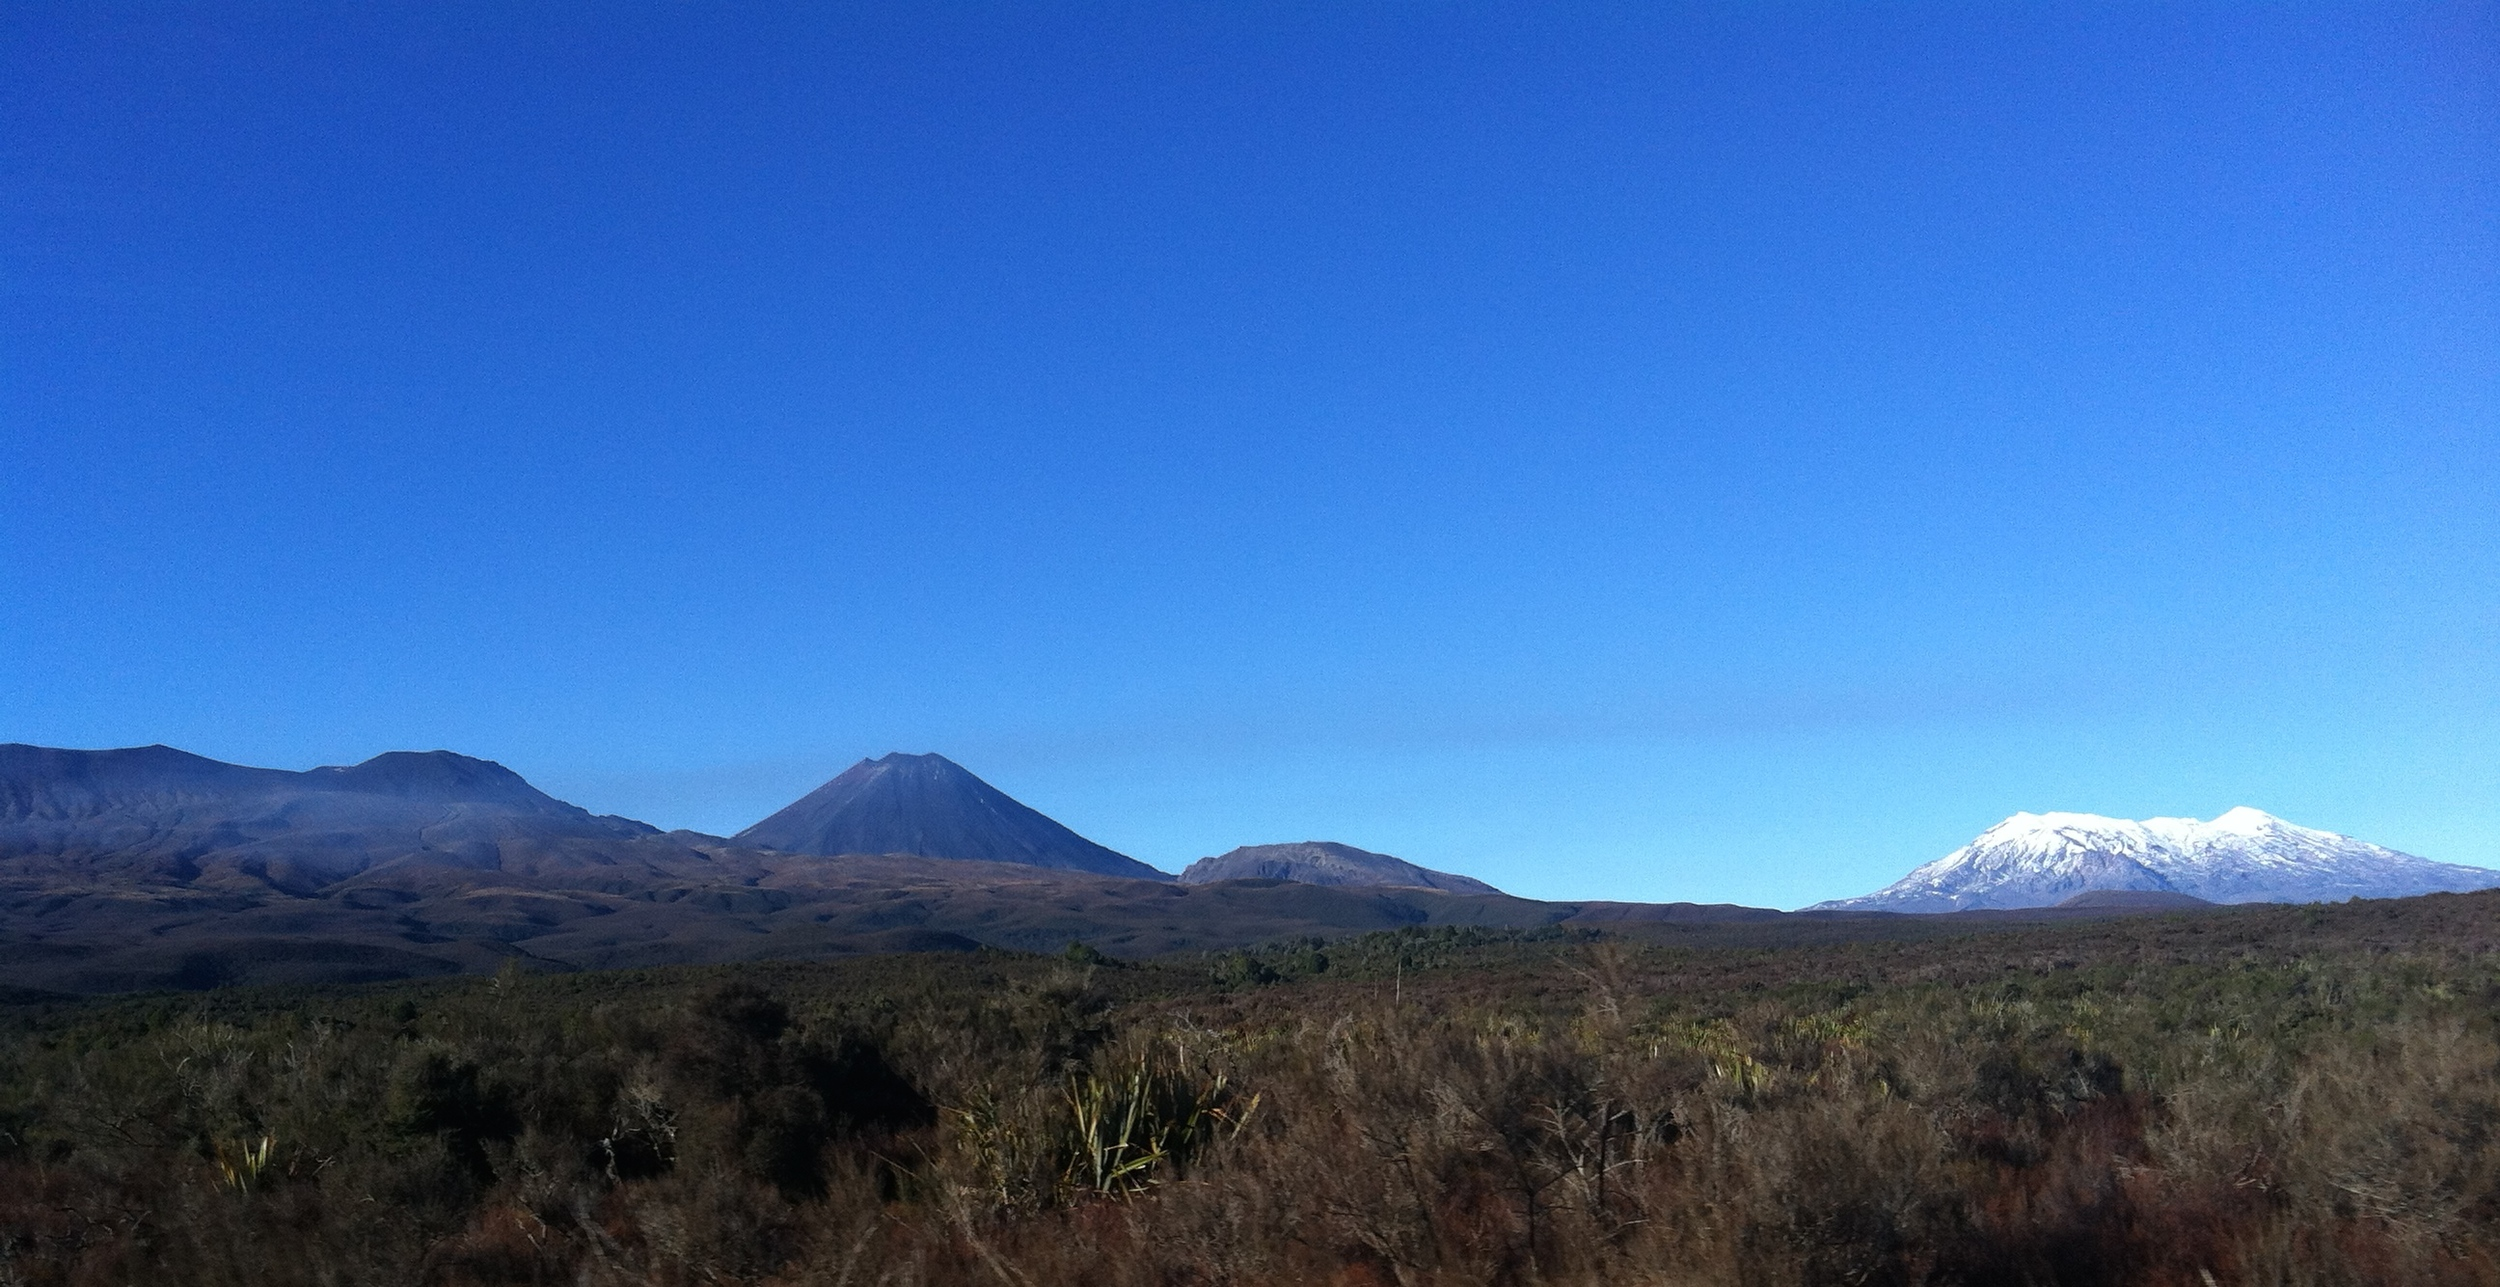 From left to right: Tongariro, Ngauruhoe (Mt. Doom), and Ruapehu